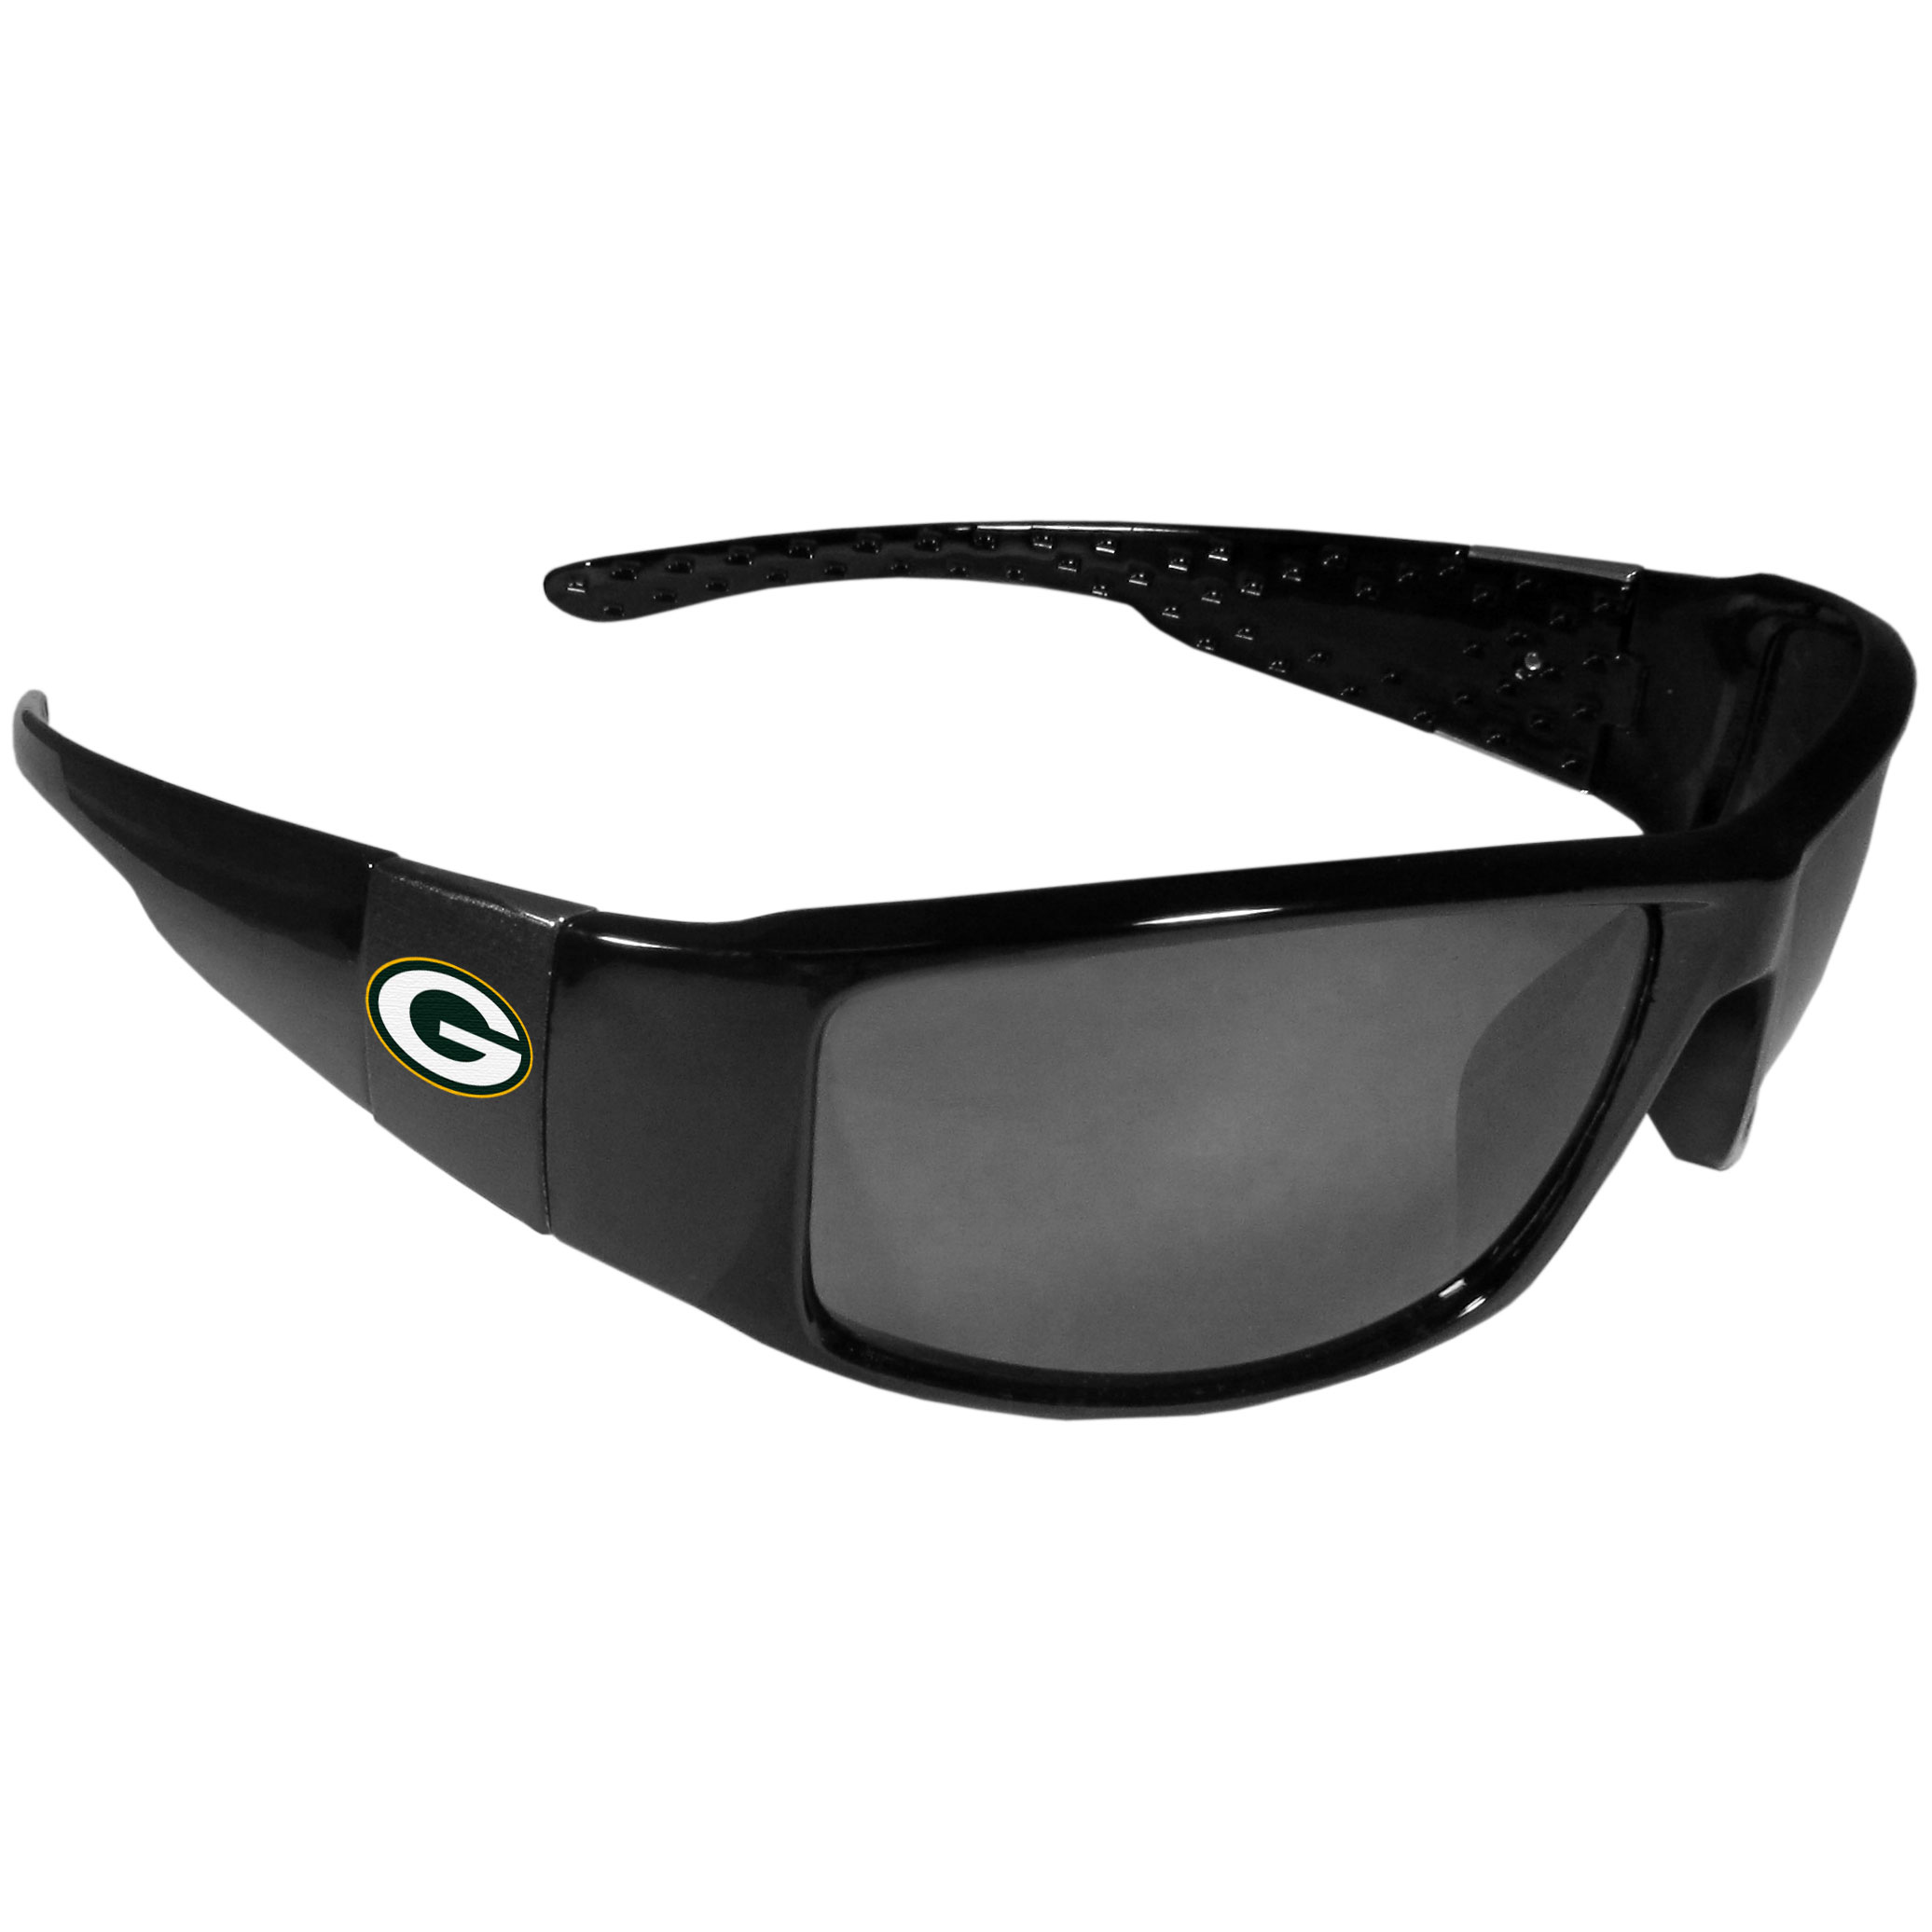 Green Bay Packers Black Wrap Sunglasses - These designer inspired frames have a sleek look in all black with  Green Bay Packers shields on each arm with a printed logo. The shades are perfect for any outdoor activity like; golfing, driving, hiking, fishing or cheering on the team at a tailgating event or at a home game day BBQ with a lens rating of 100% UVA/UVB for maximum UV protection. The high-quality frames are as durable as they are fashionable and with their classic look they are the perfect fan accessory that can be worn everyday for every occasion.